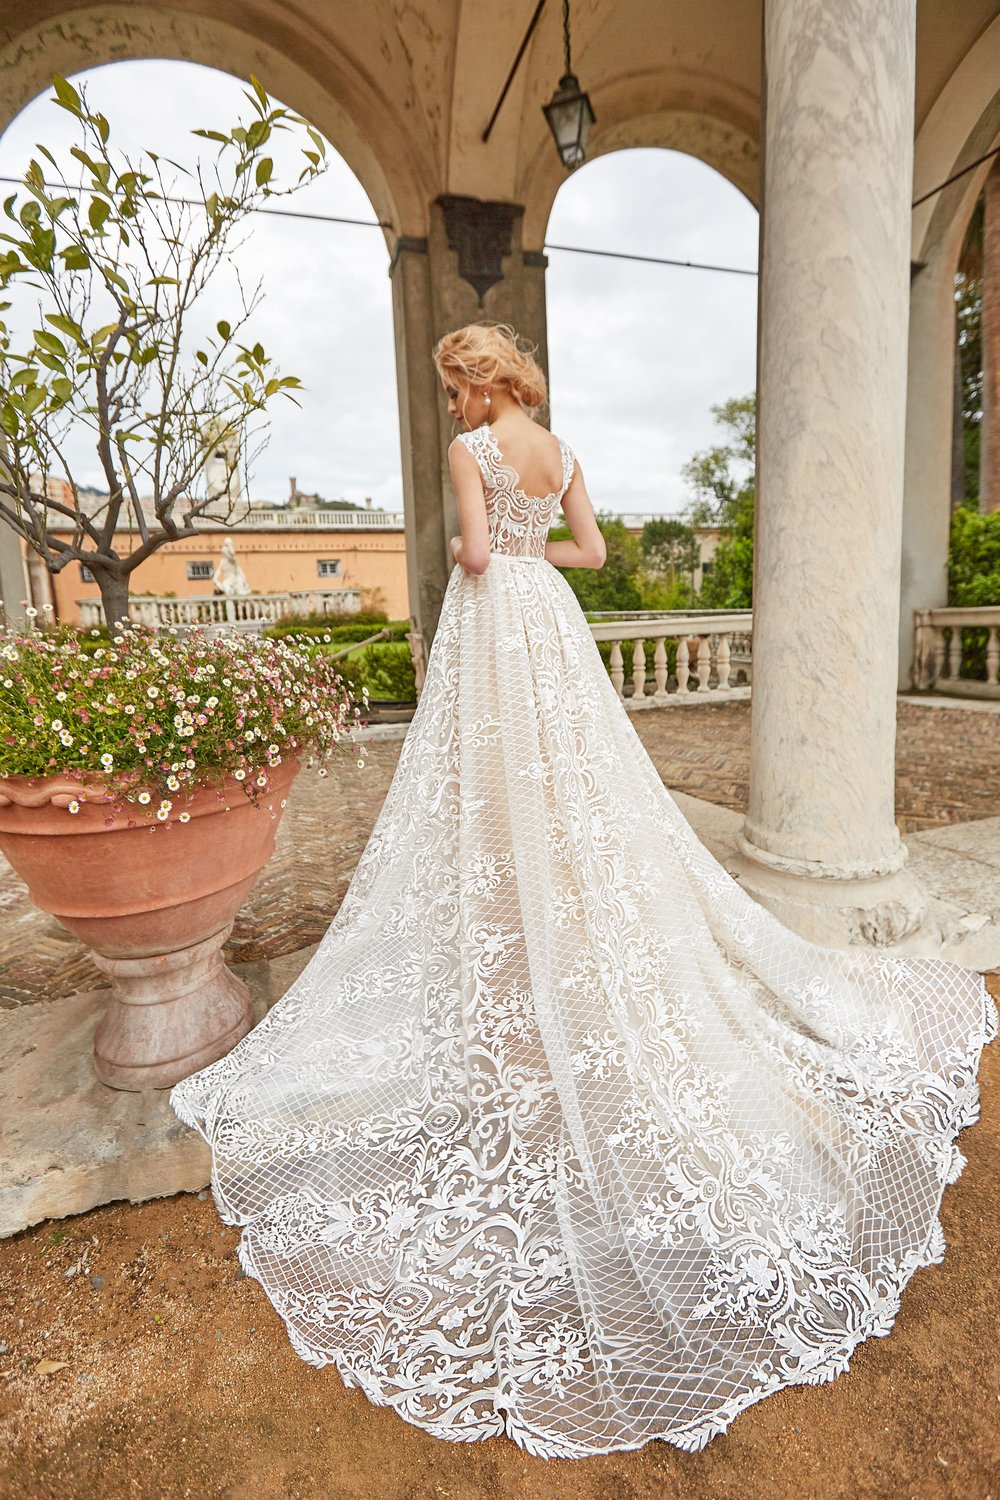 MARITA wedding dress by OKSANA MUKHA